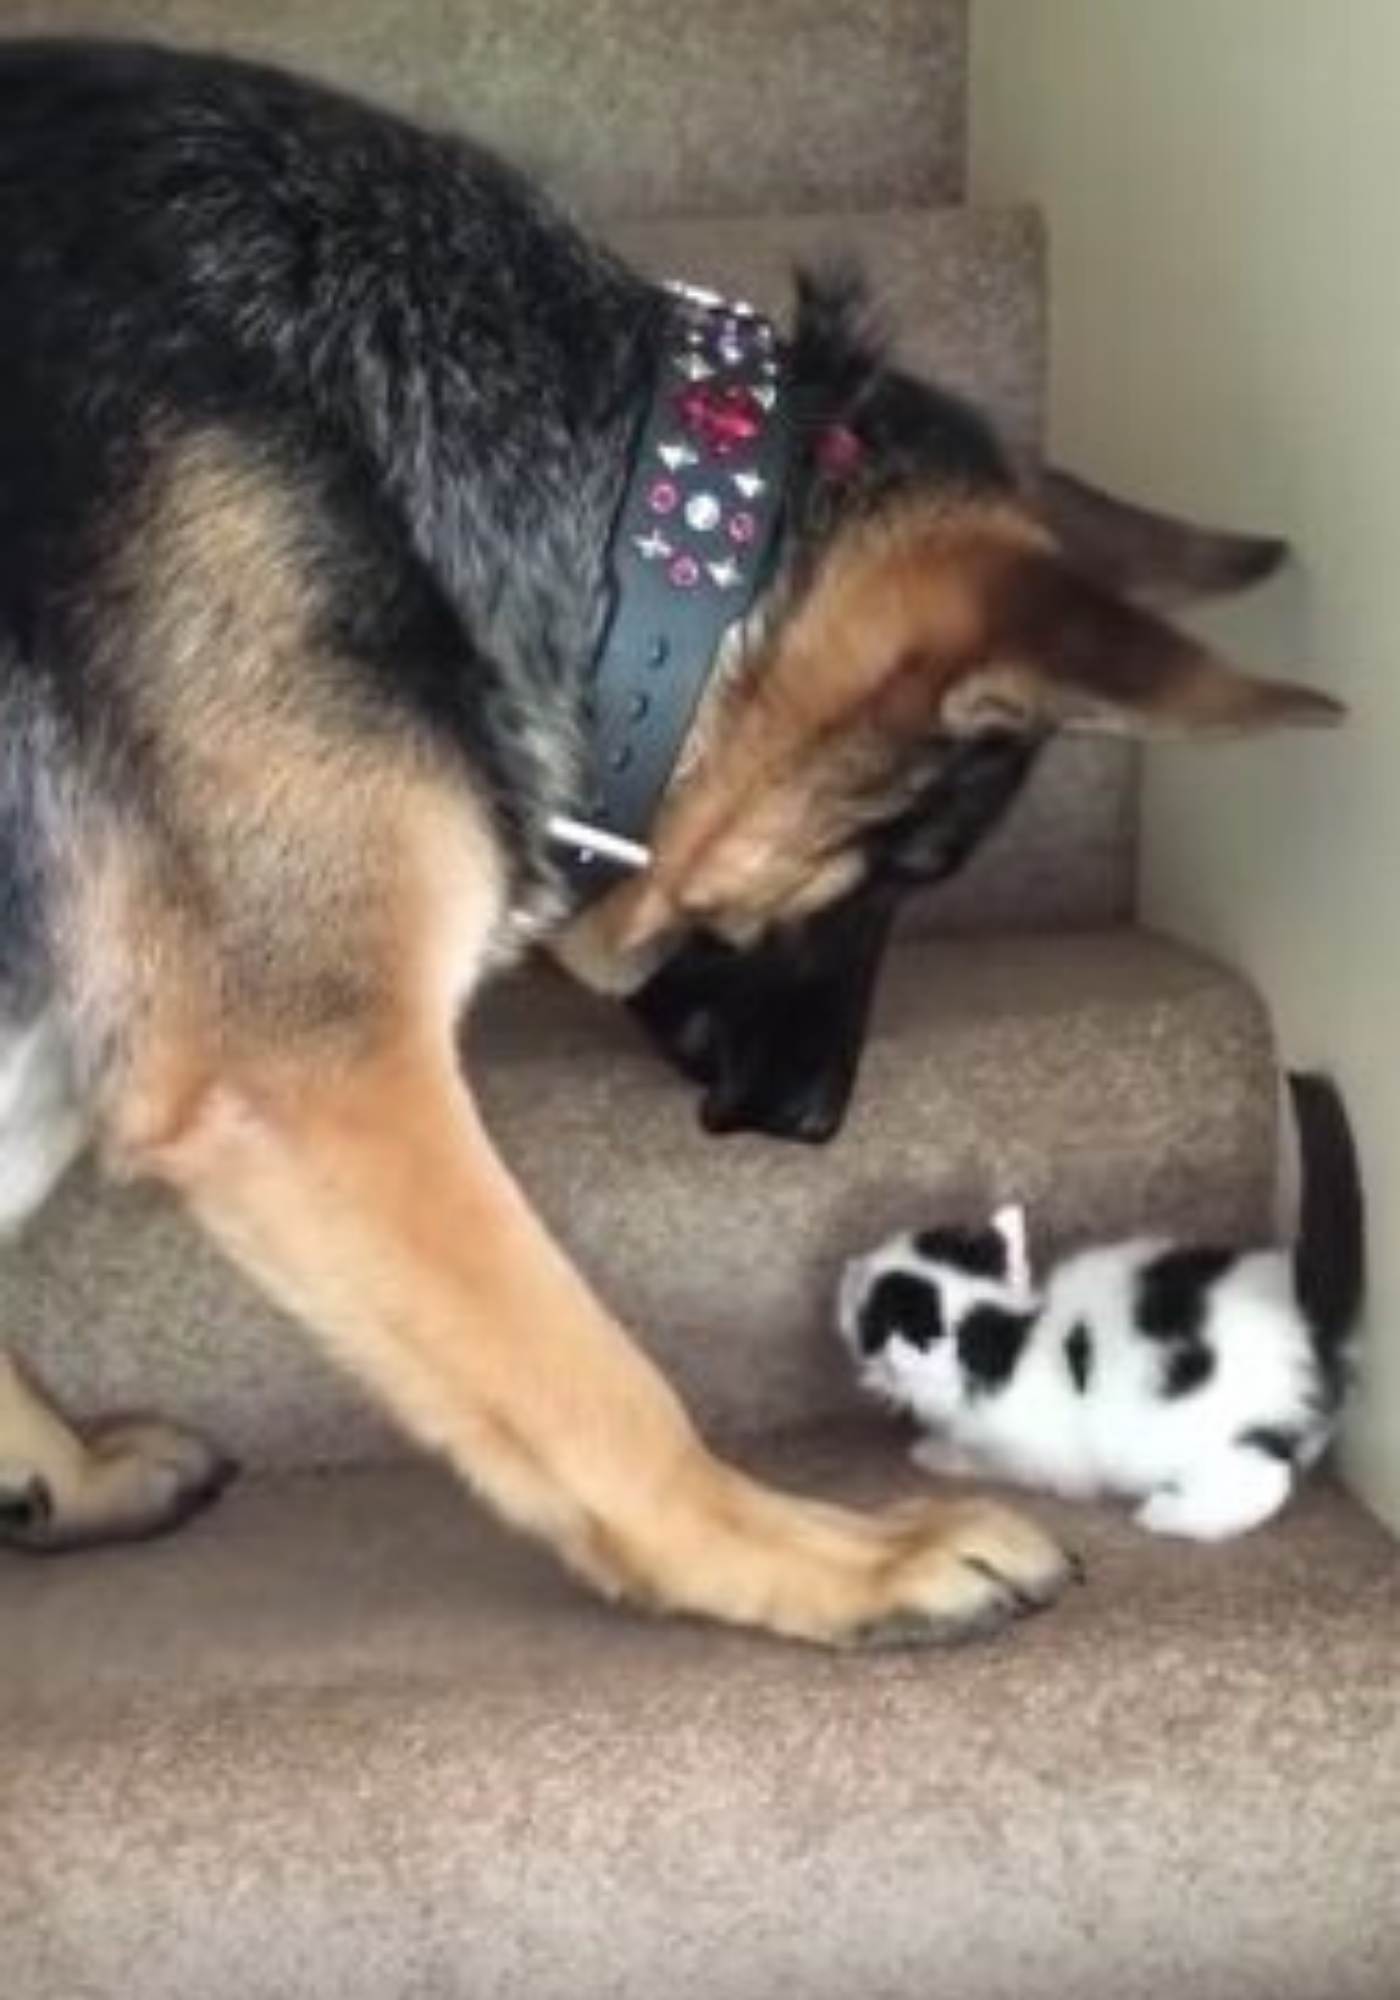 Dog Sees Adorable Kitten Trying To Hop Up The Stairs Decides To Carry Him In 2020 Dogs Kittens German Shepherd